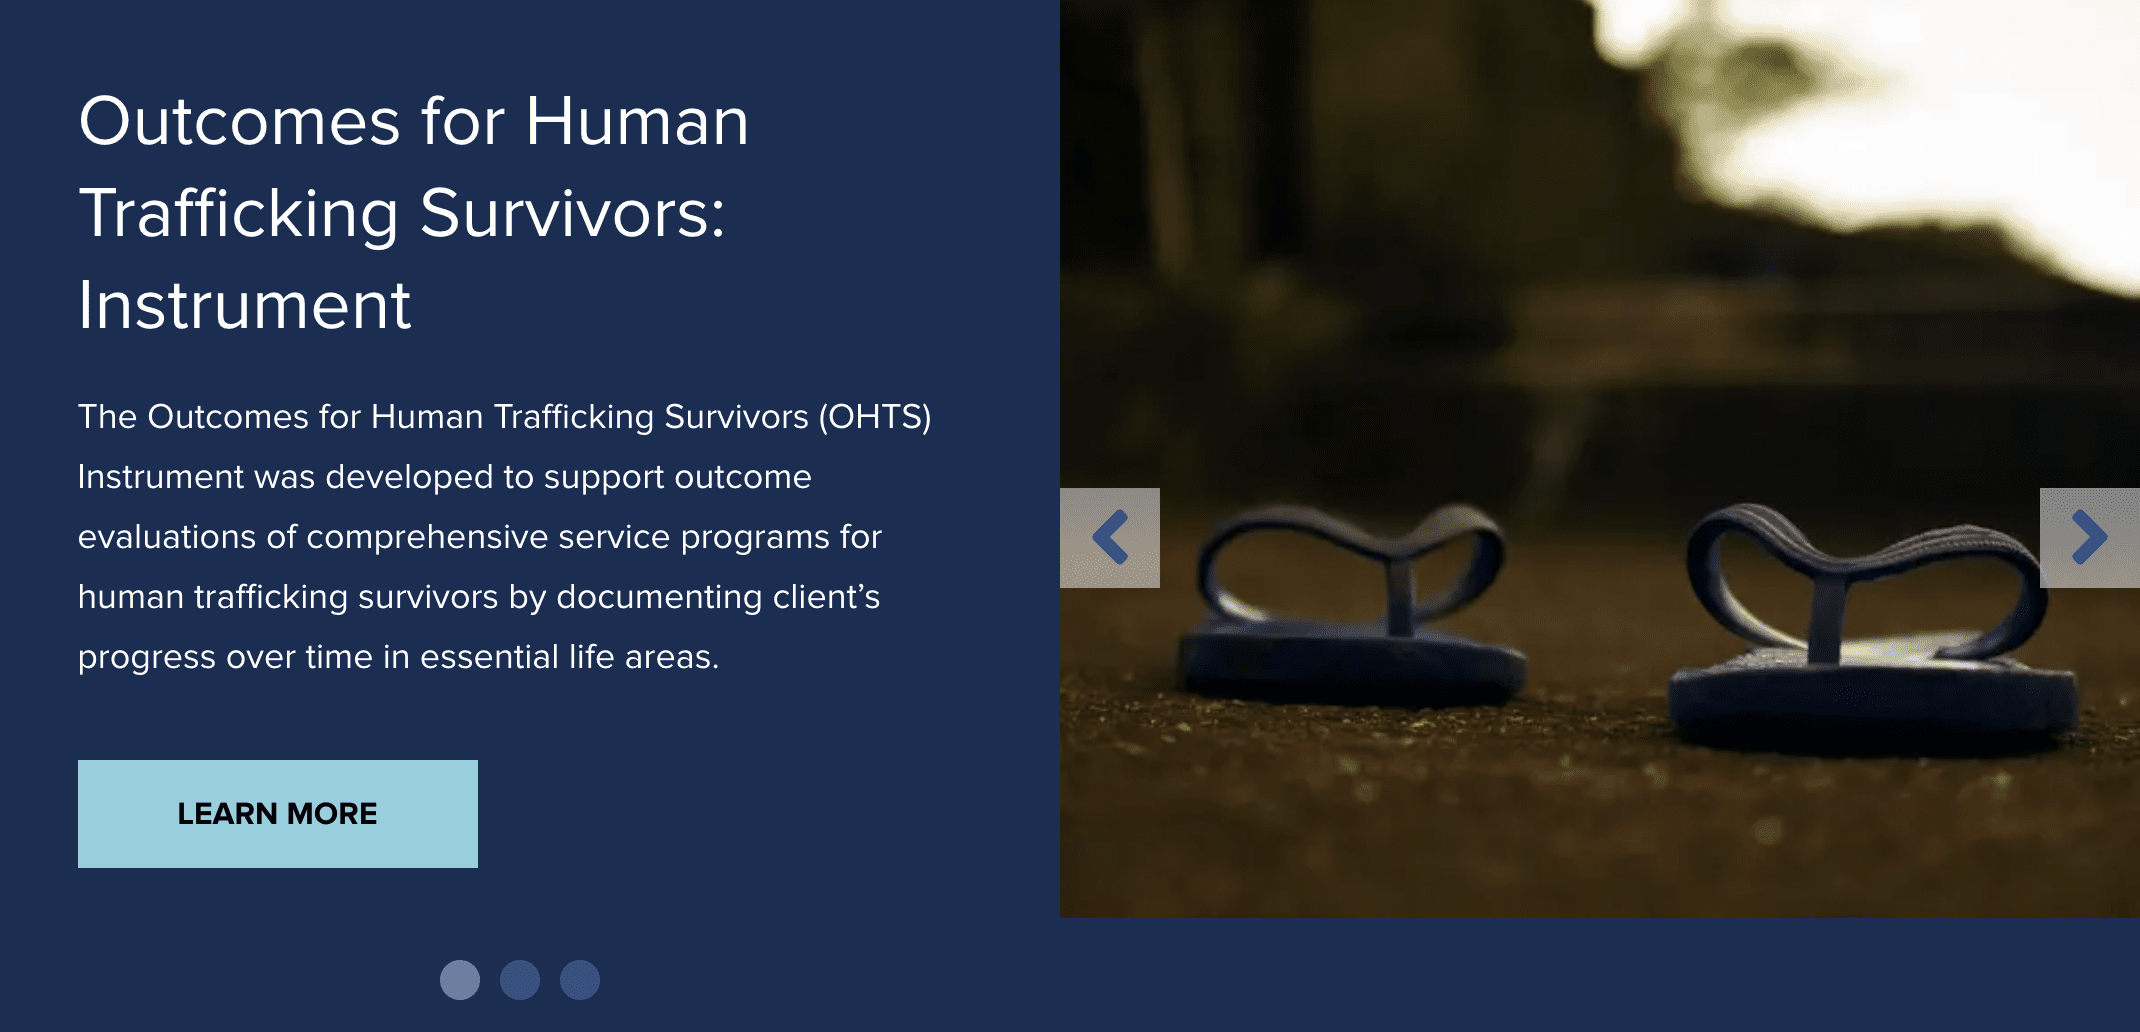 Measuring Outcomes for Survivors of Human Trafficking